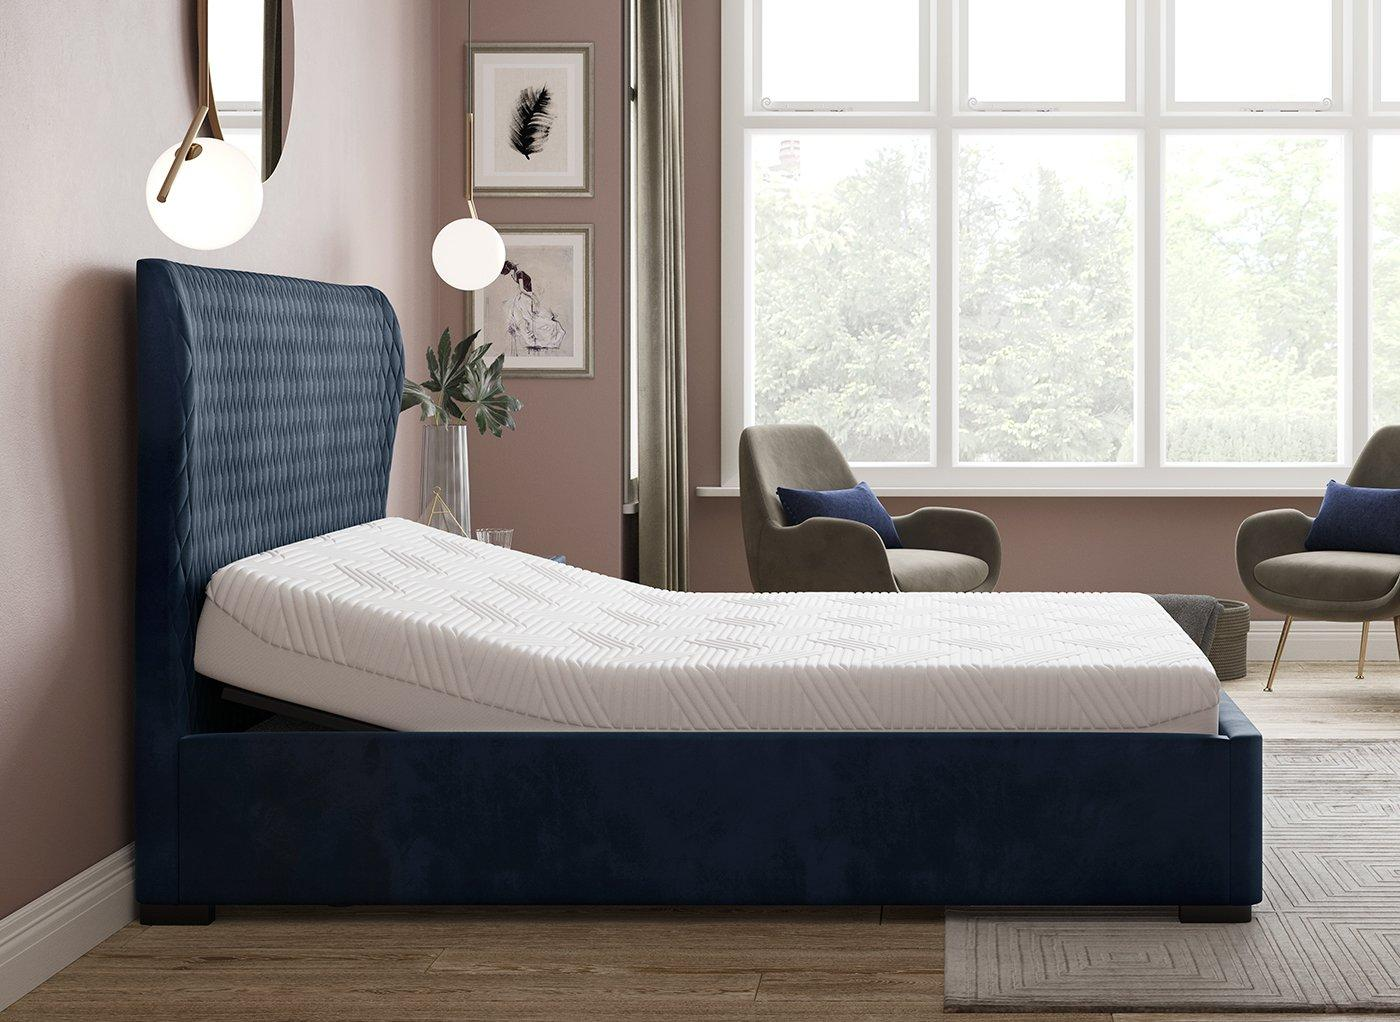 grove-sleepmotion-adjustable-upholstered-bed-frame